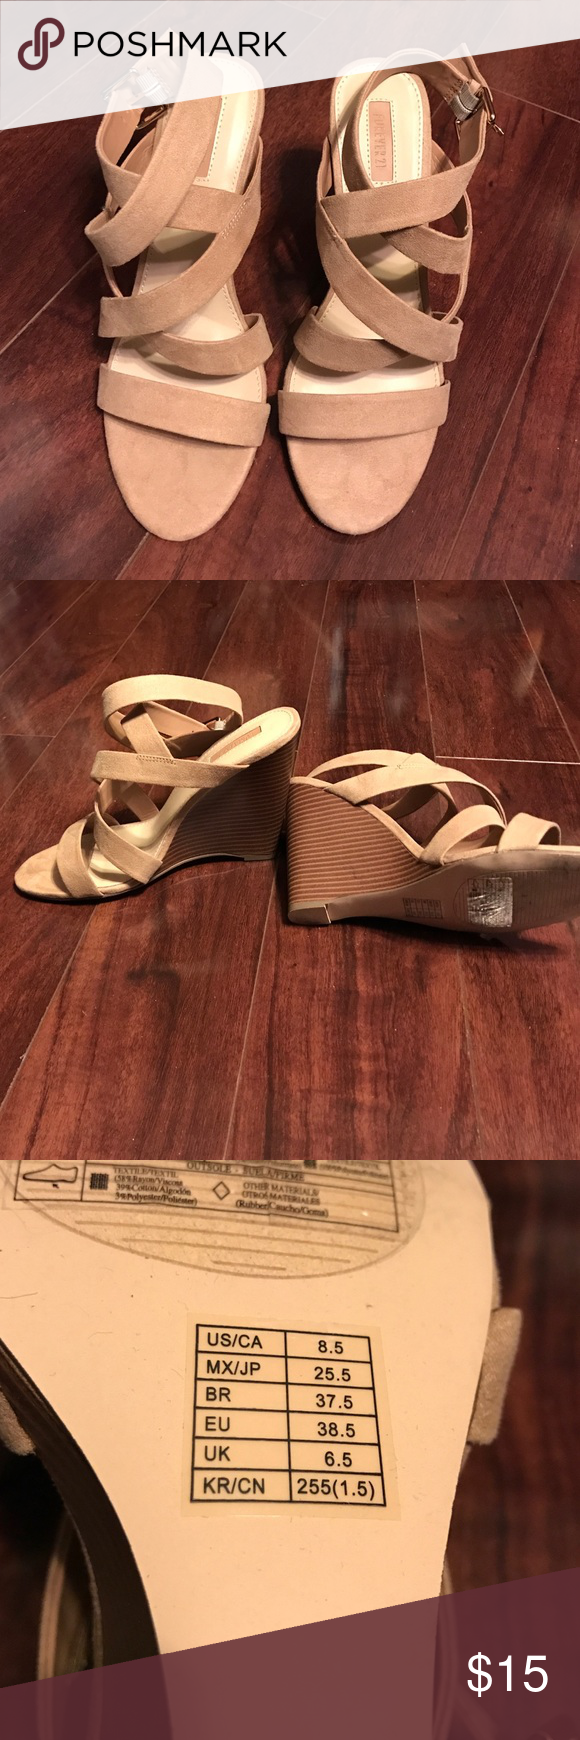 Forever 21 women's tan wedges Just ordered from Poshmark and they are too small for me. The previous owner wore them once. Tan, strappy wedge. Size 8.5 Forever 21 Shoes Wedges